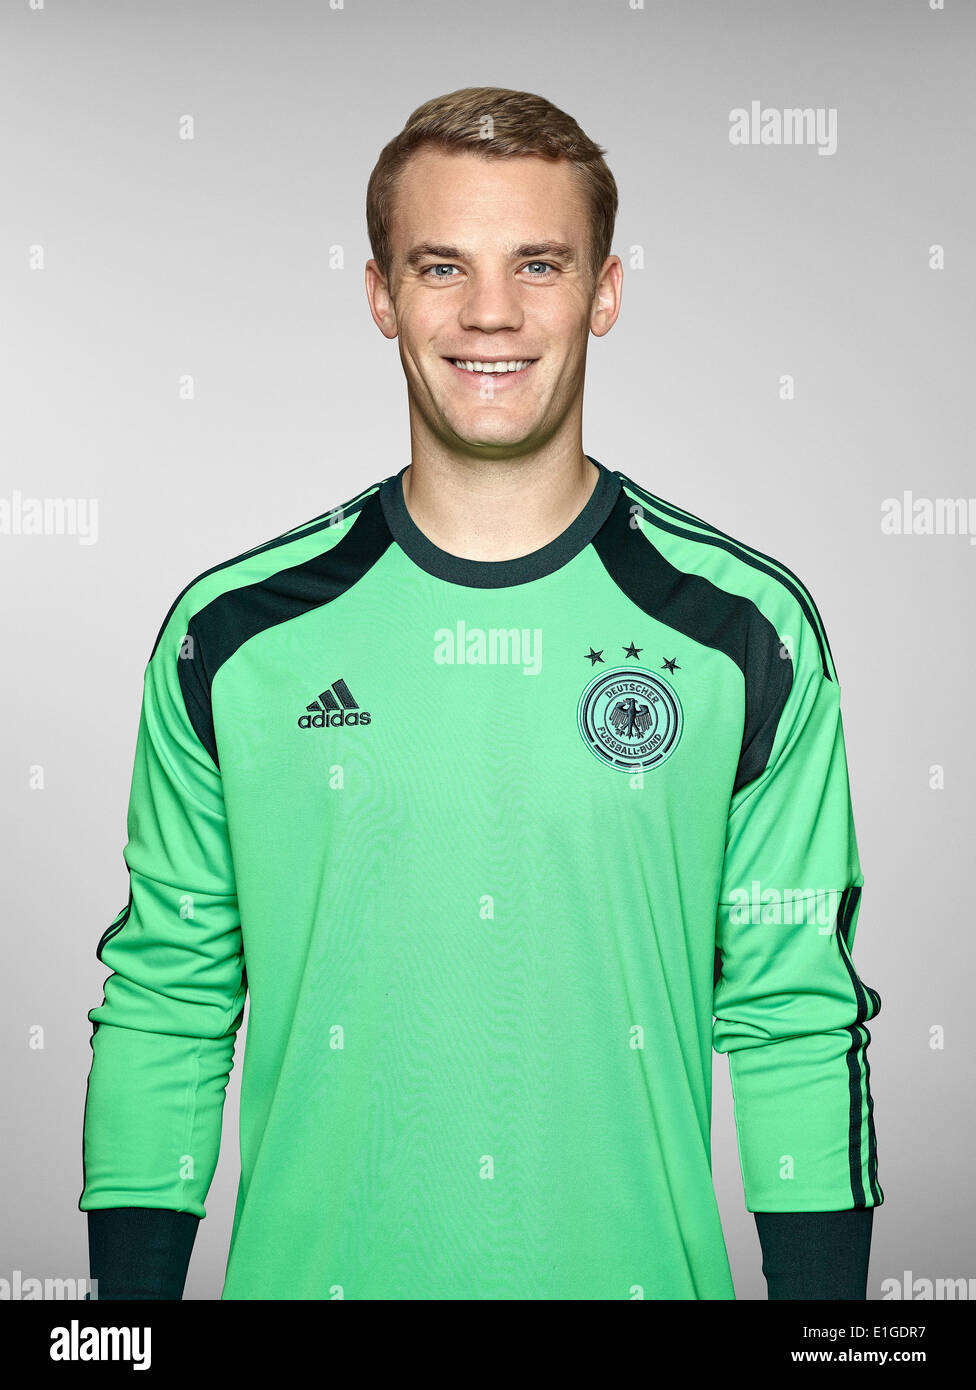 FIFA World Cup 2014 - photocall Team Germany, 24 May 2014 in Passeier, Italy: Manuel Neuer. Photo credit: Bongarts/Getty Images/German Football Association/dpa (editorial use only) - Stock Image